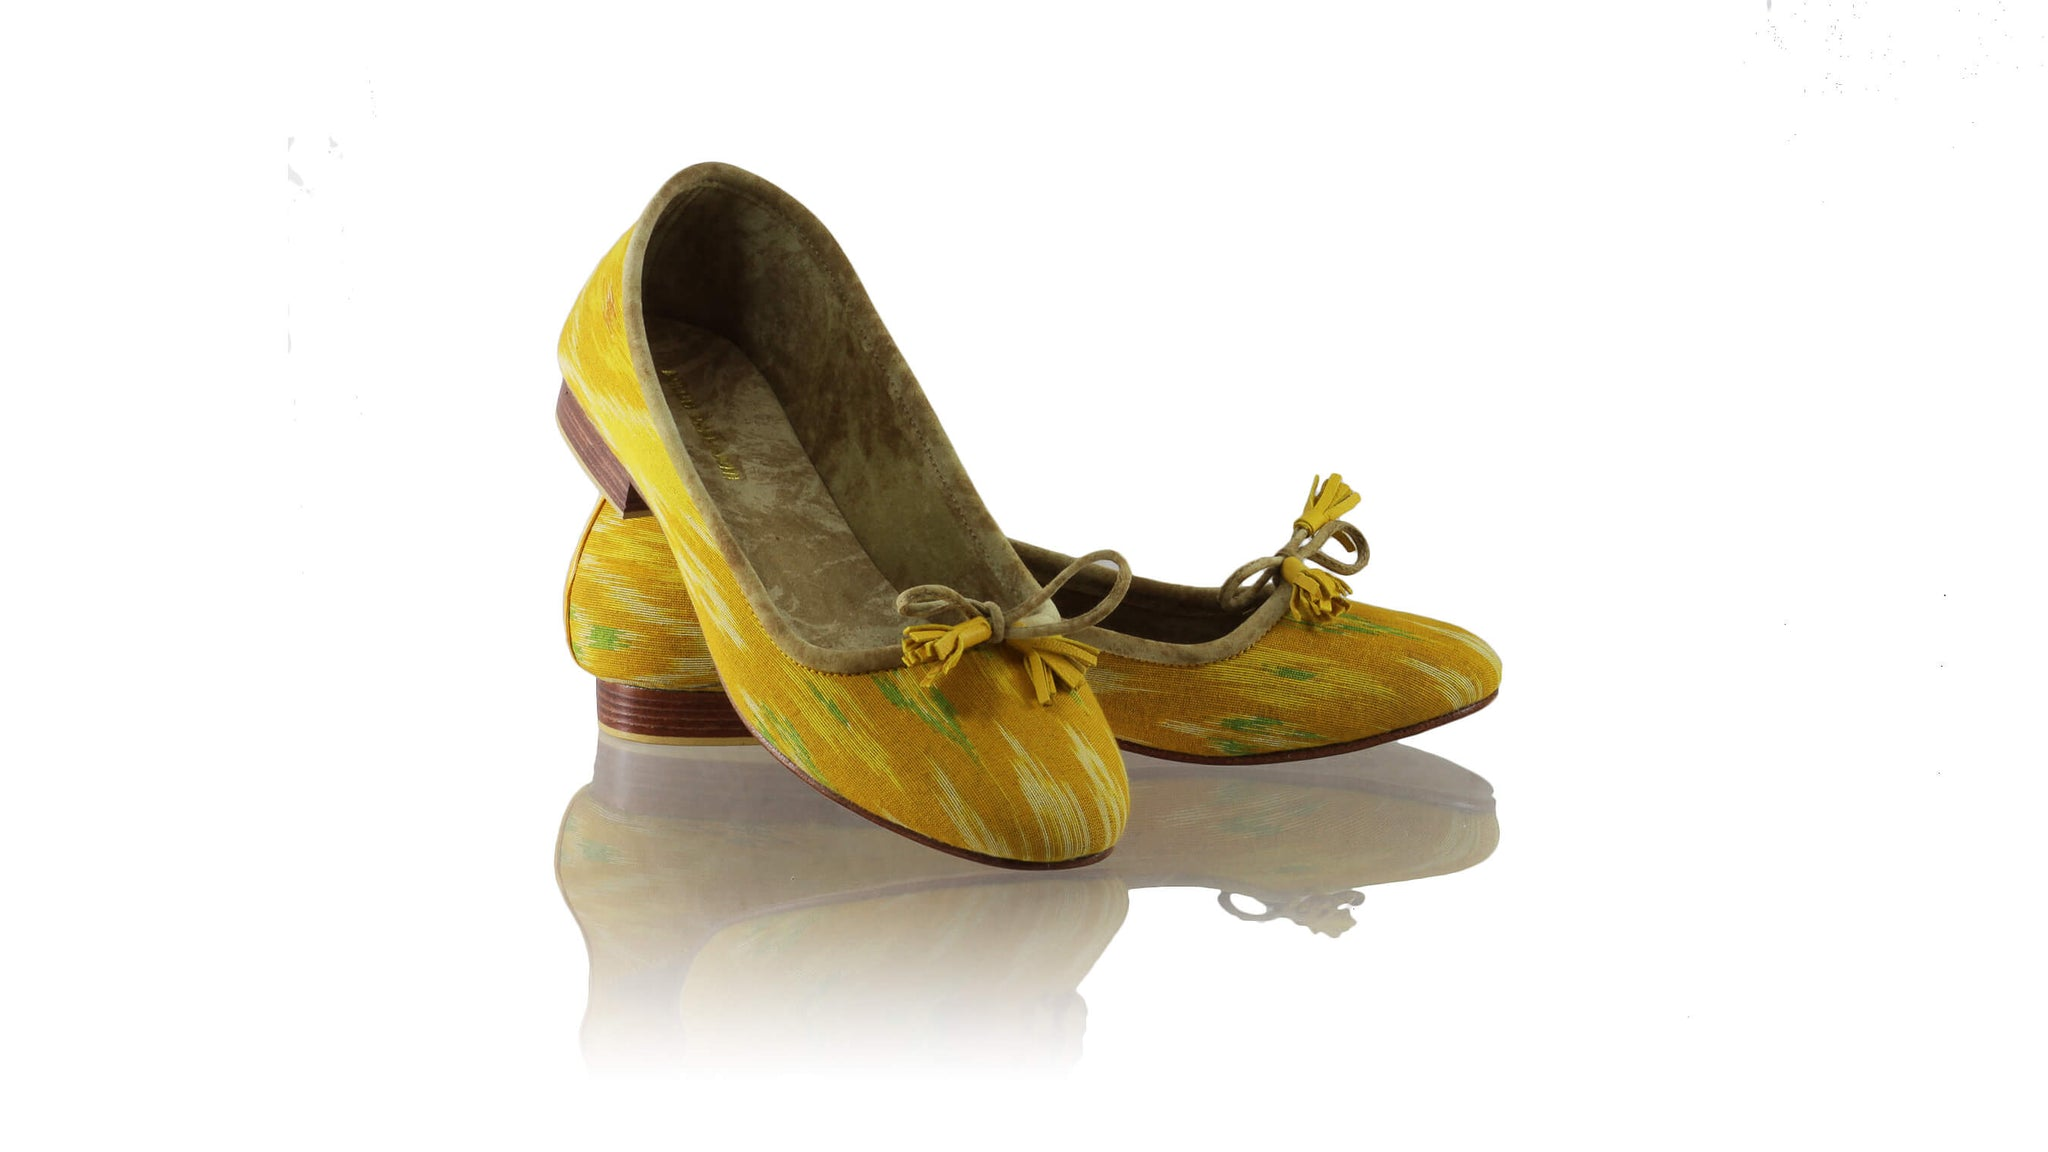 Leather-shoes-Noemi 20mm Ballet - Mustard Yellow & Green Handwoven Ikat-flats ballet-NILUH DJELANTIK-NILUH DJELANTIK